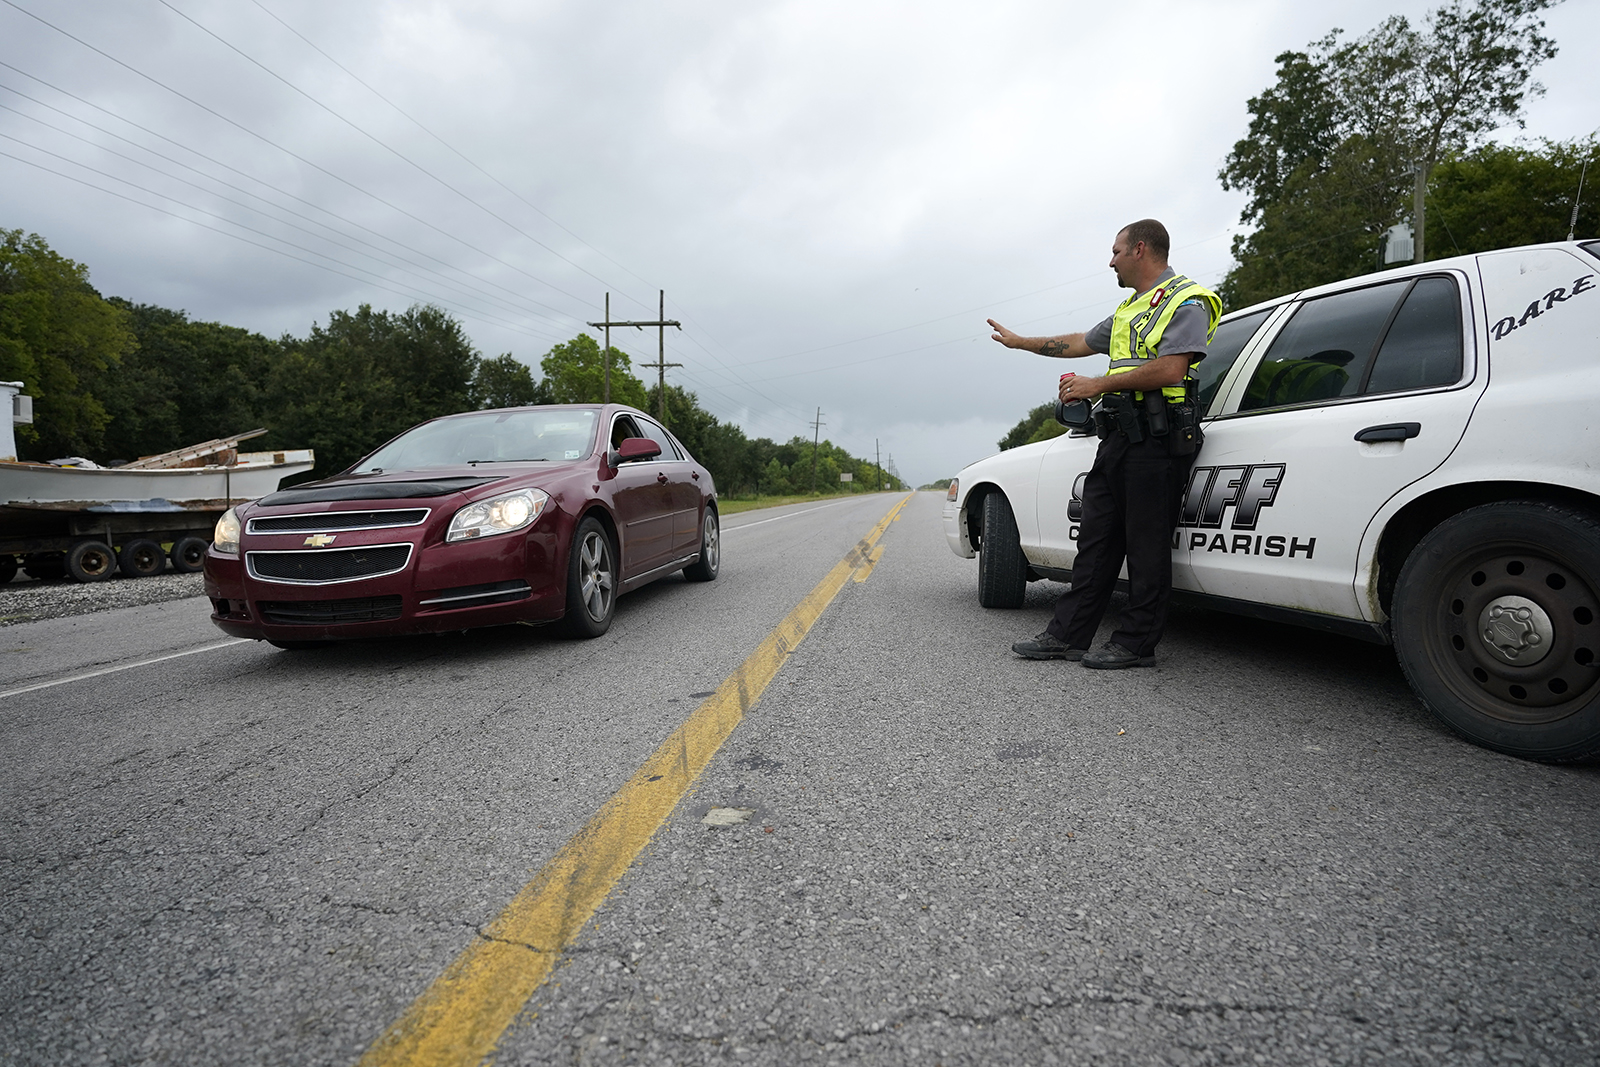 A Cameron Parish Sheriff's deputy waves at a roadblock on LA 27 as residents evacuate Cameron in Lake Charles, Louisiana on Wednesday, August 26, ahead of Hurricane Laura.